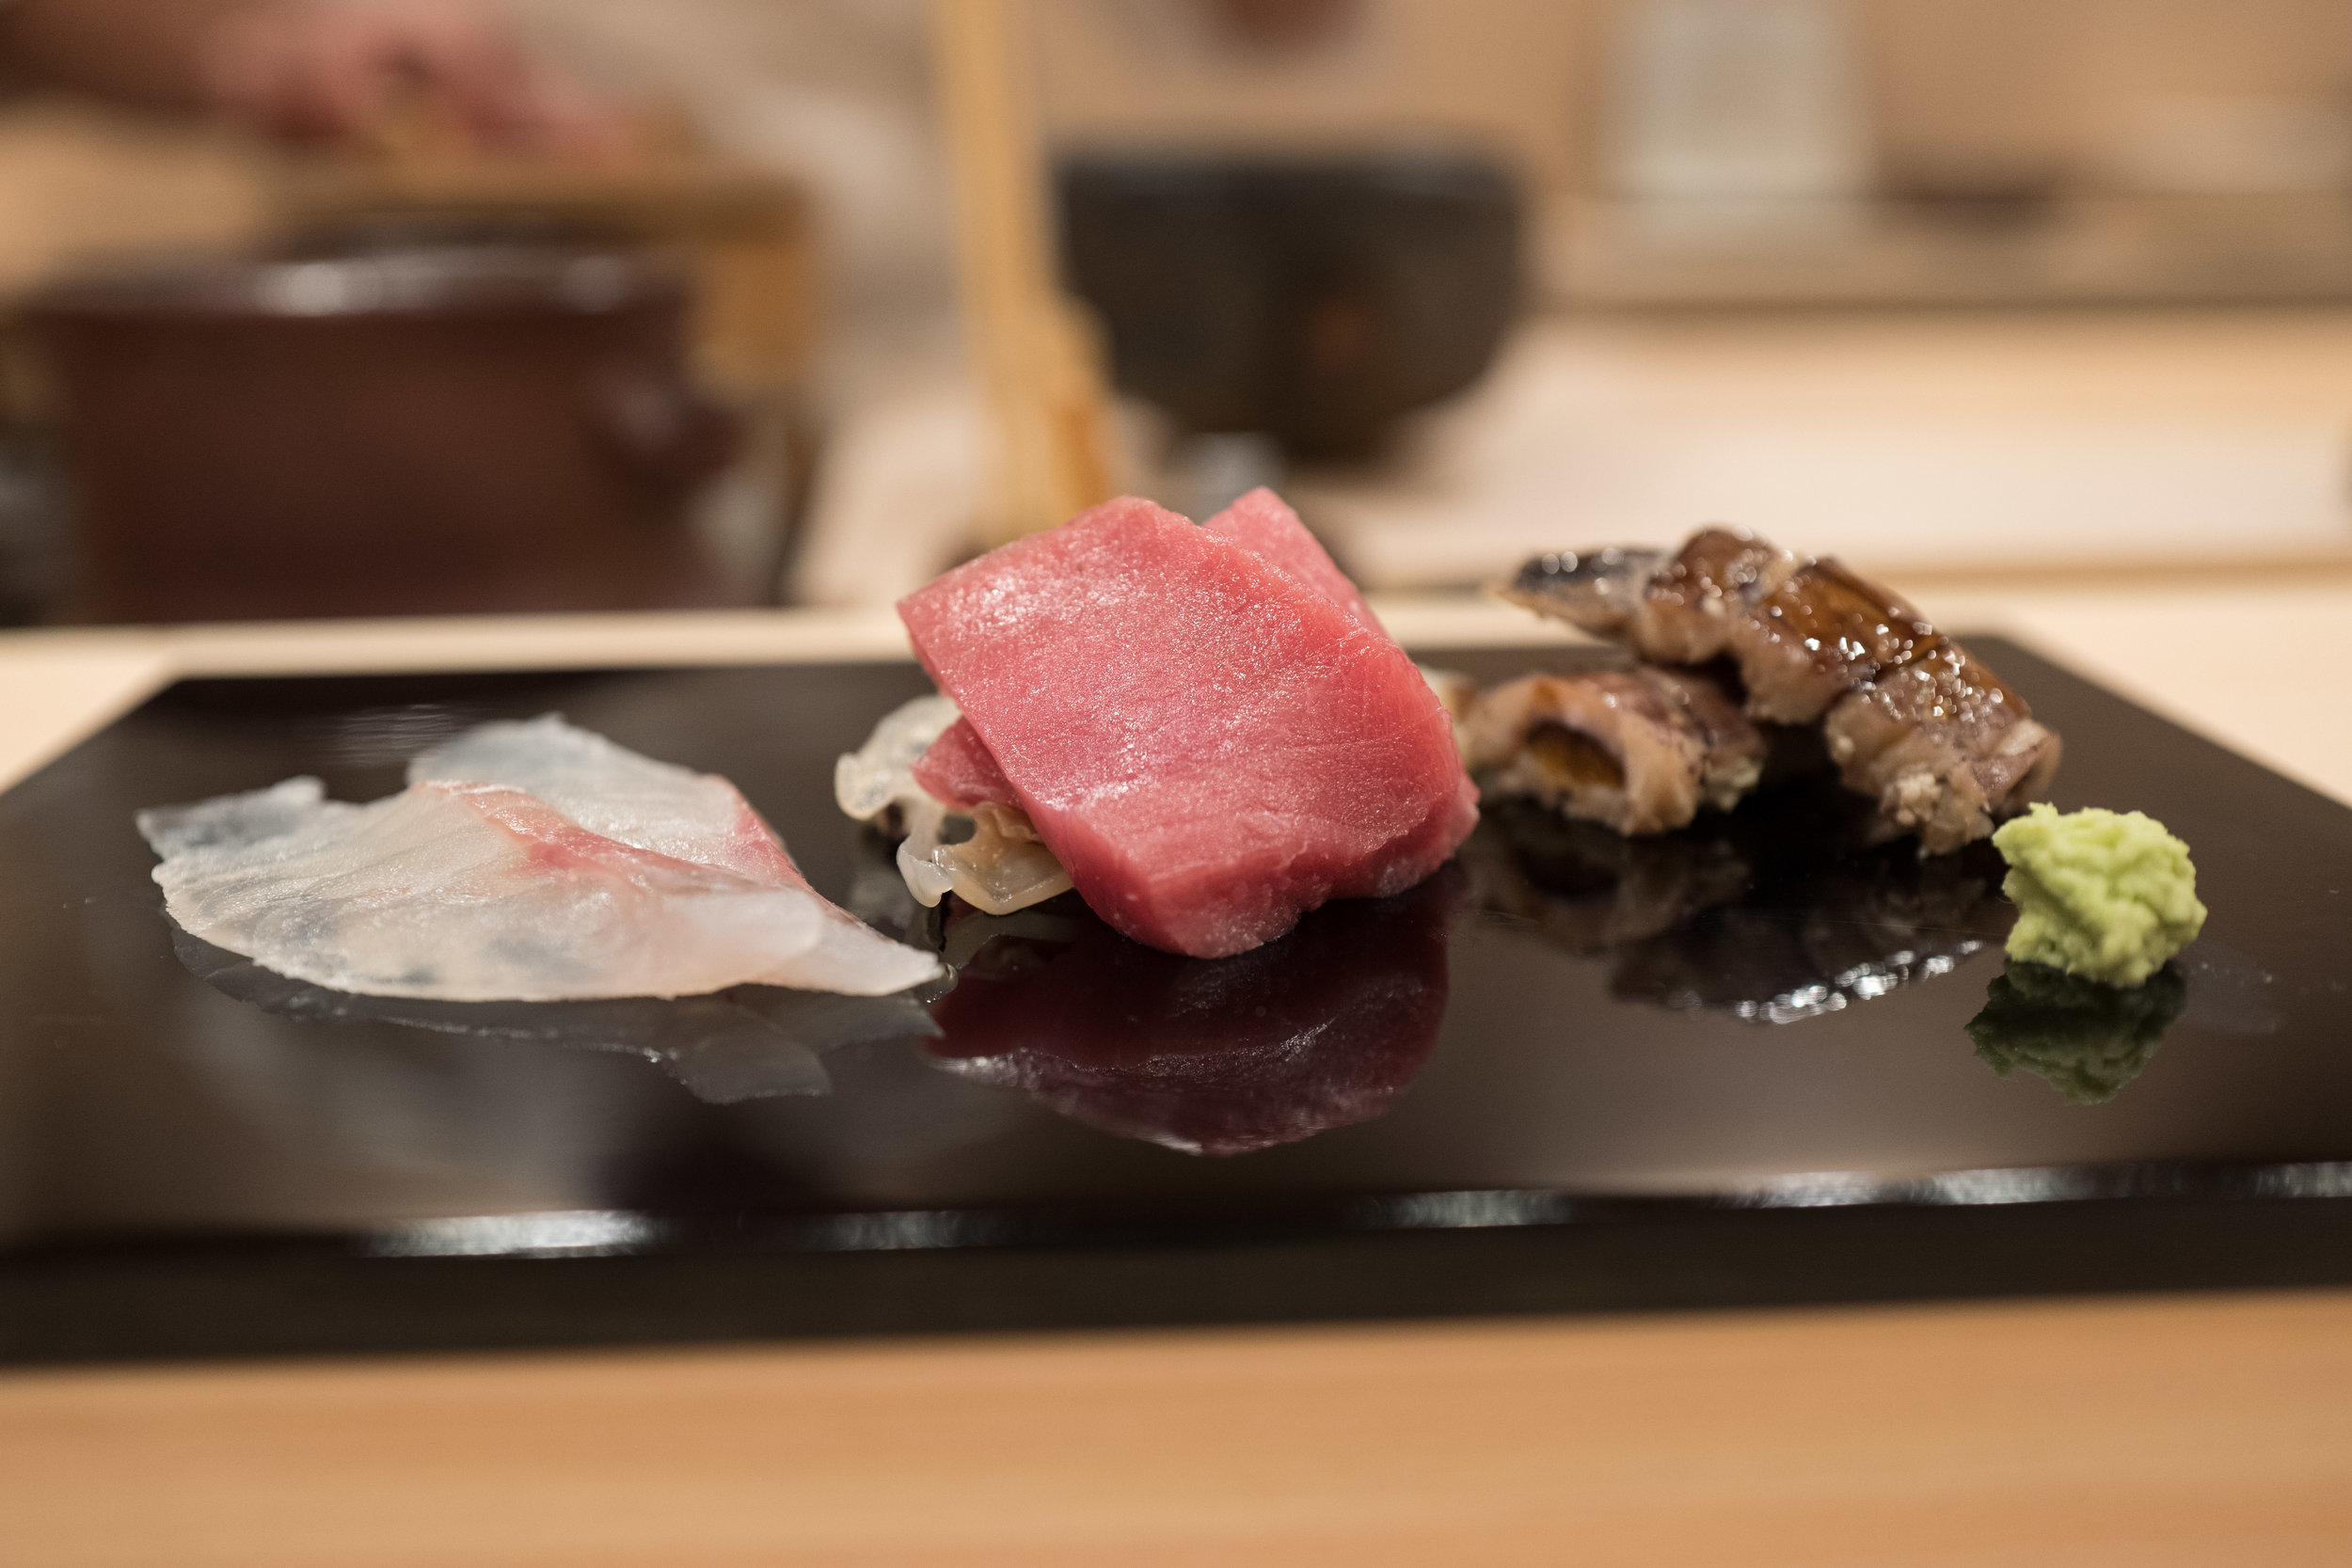 Off to a good start with the first otsumami plate. The shako (right) was particularly tasty.